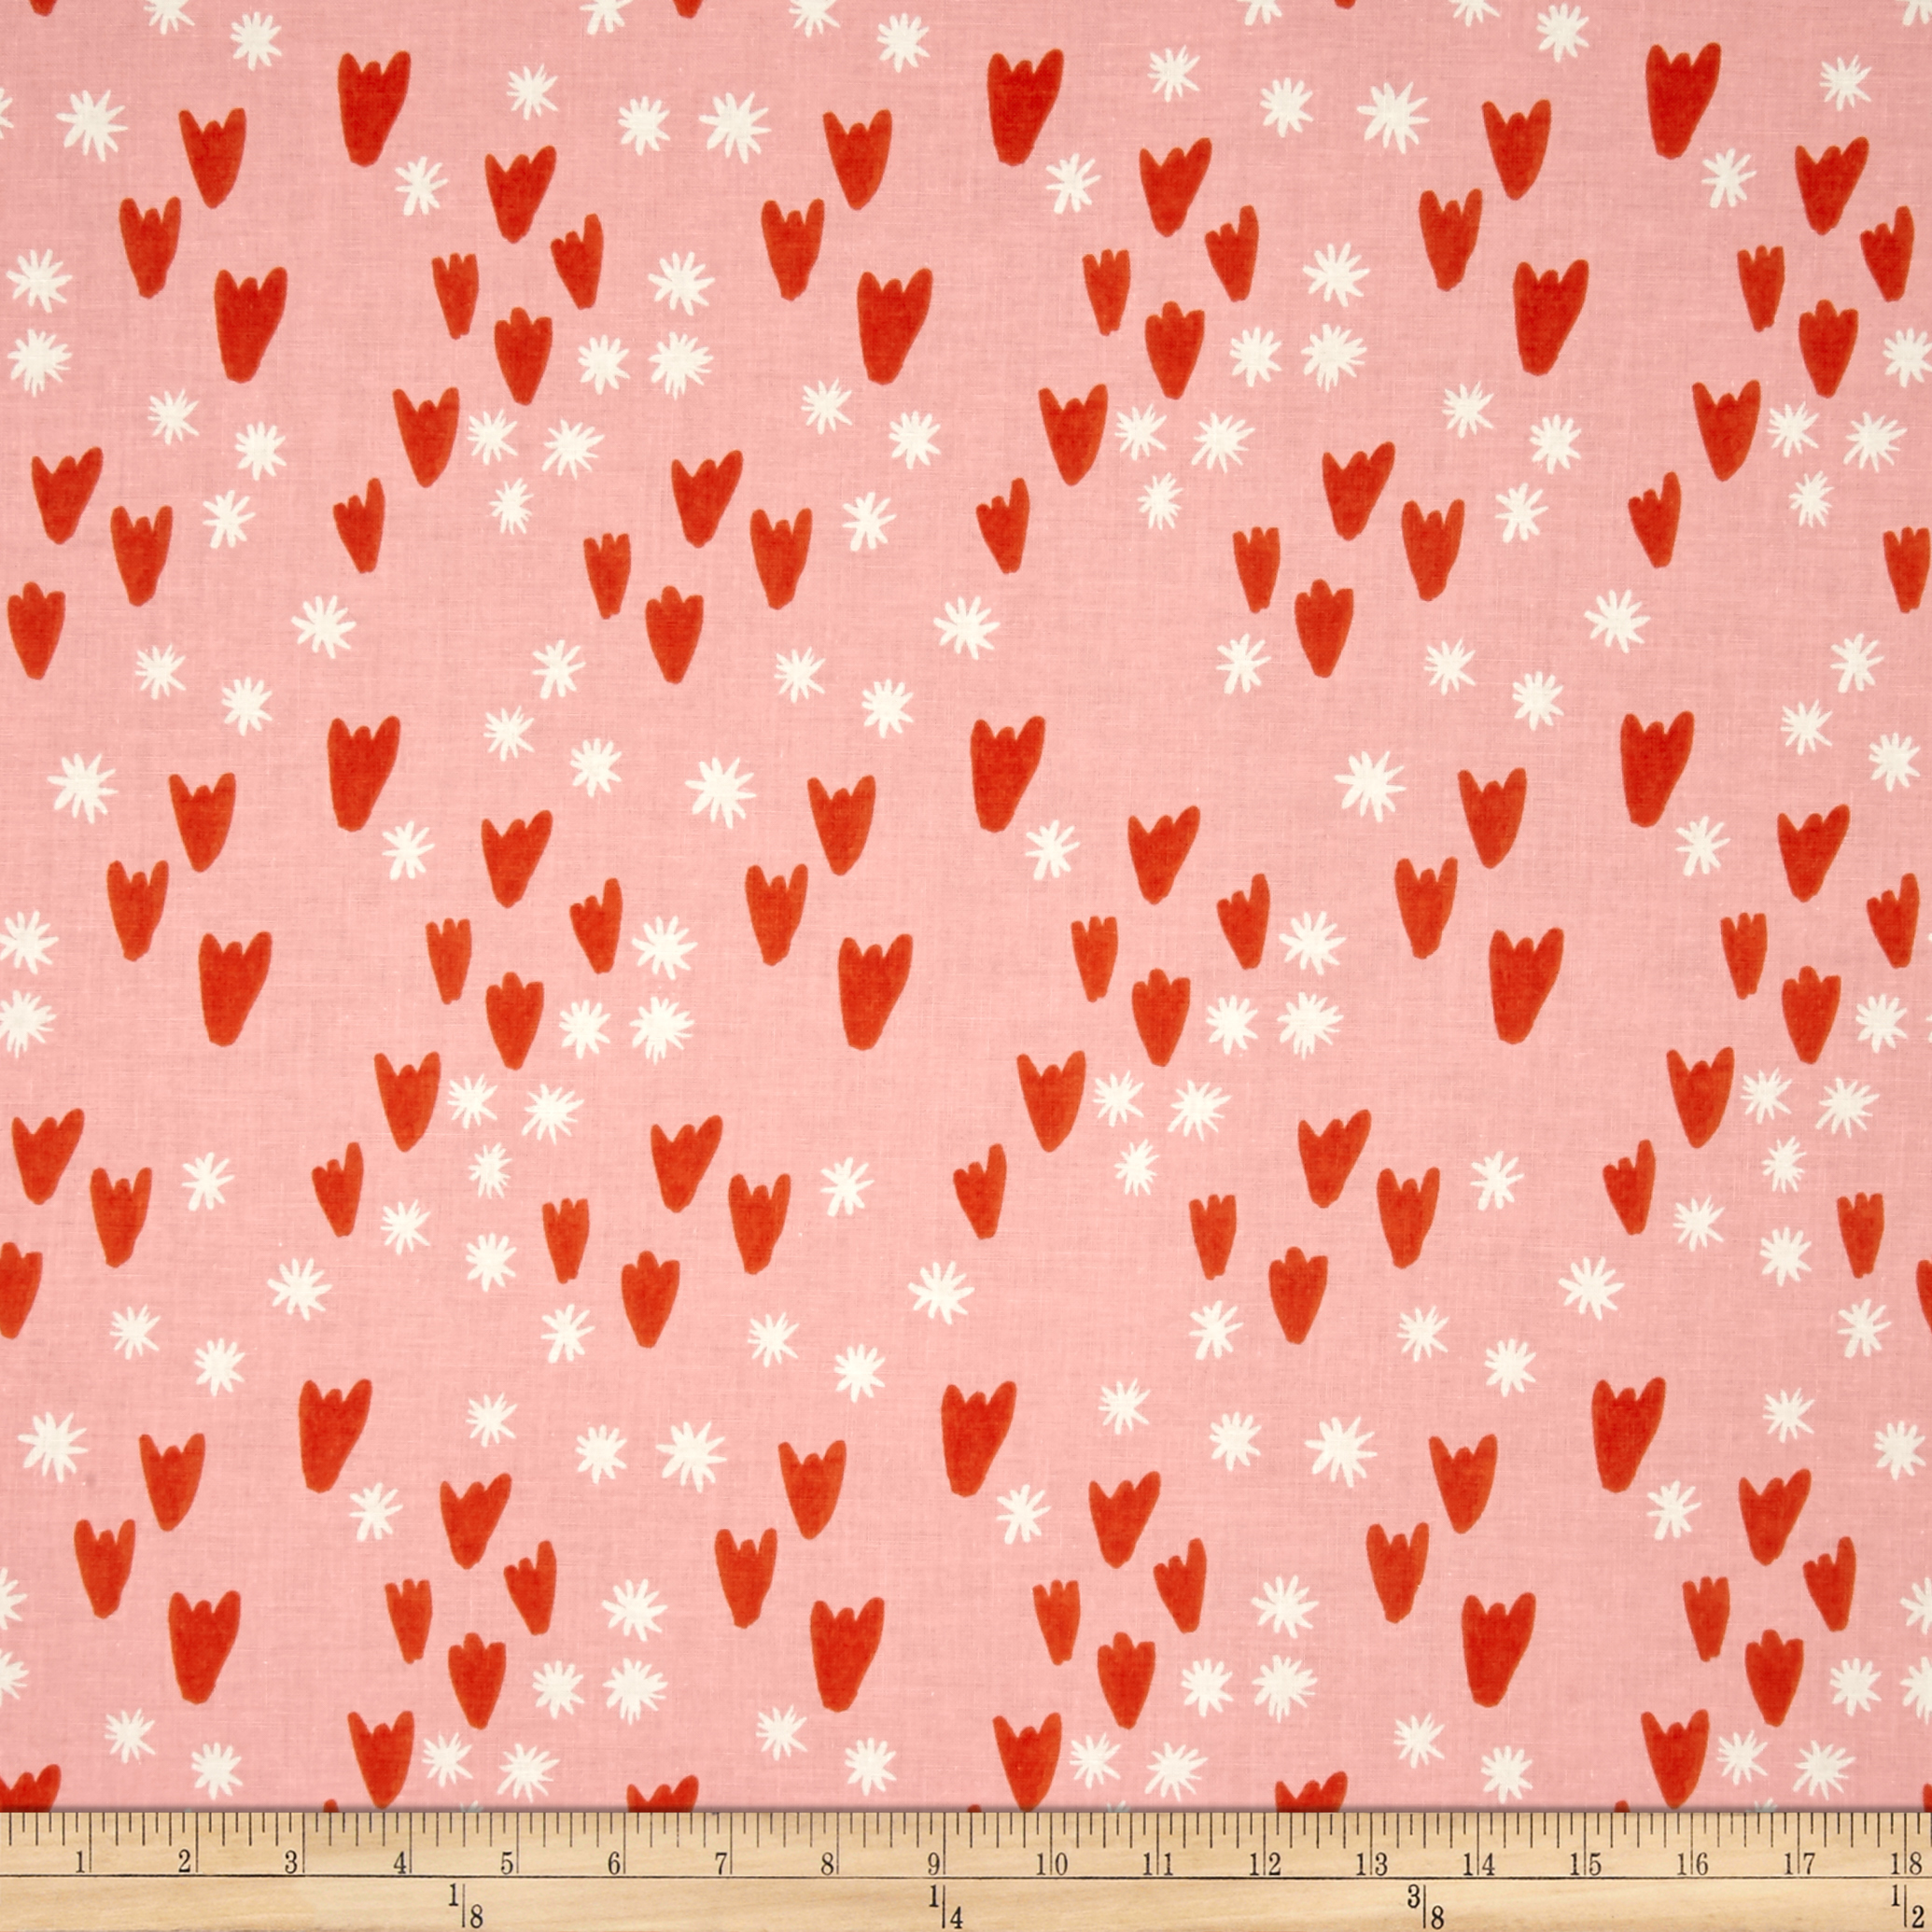 Cotton + Steel Clover Tulips Pink Fabric